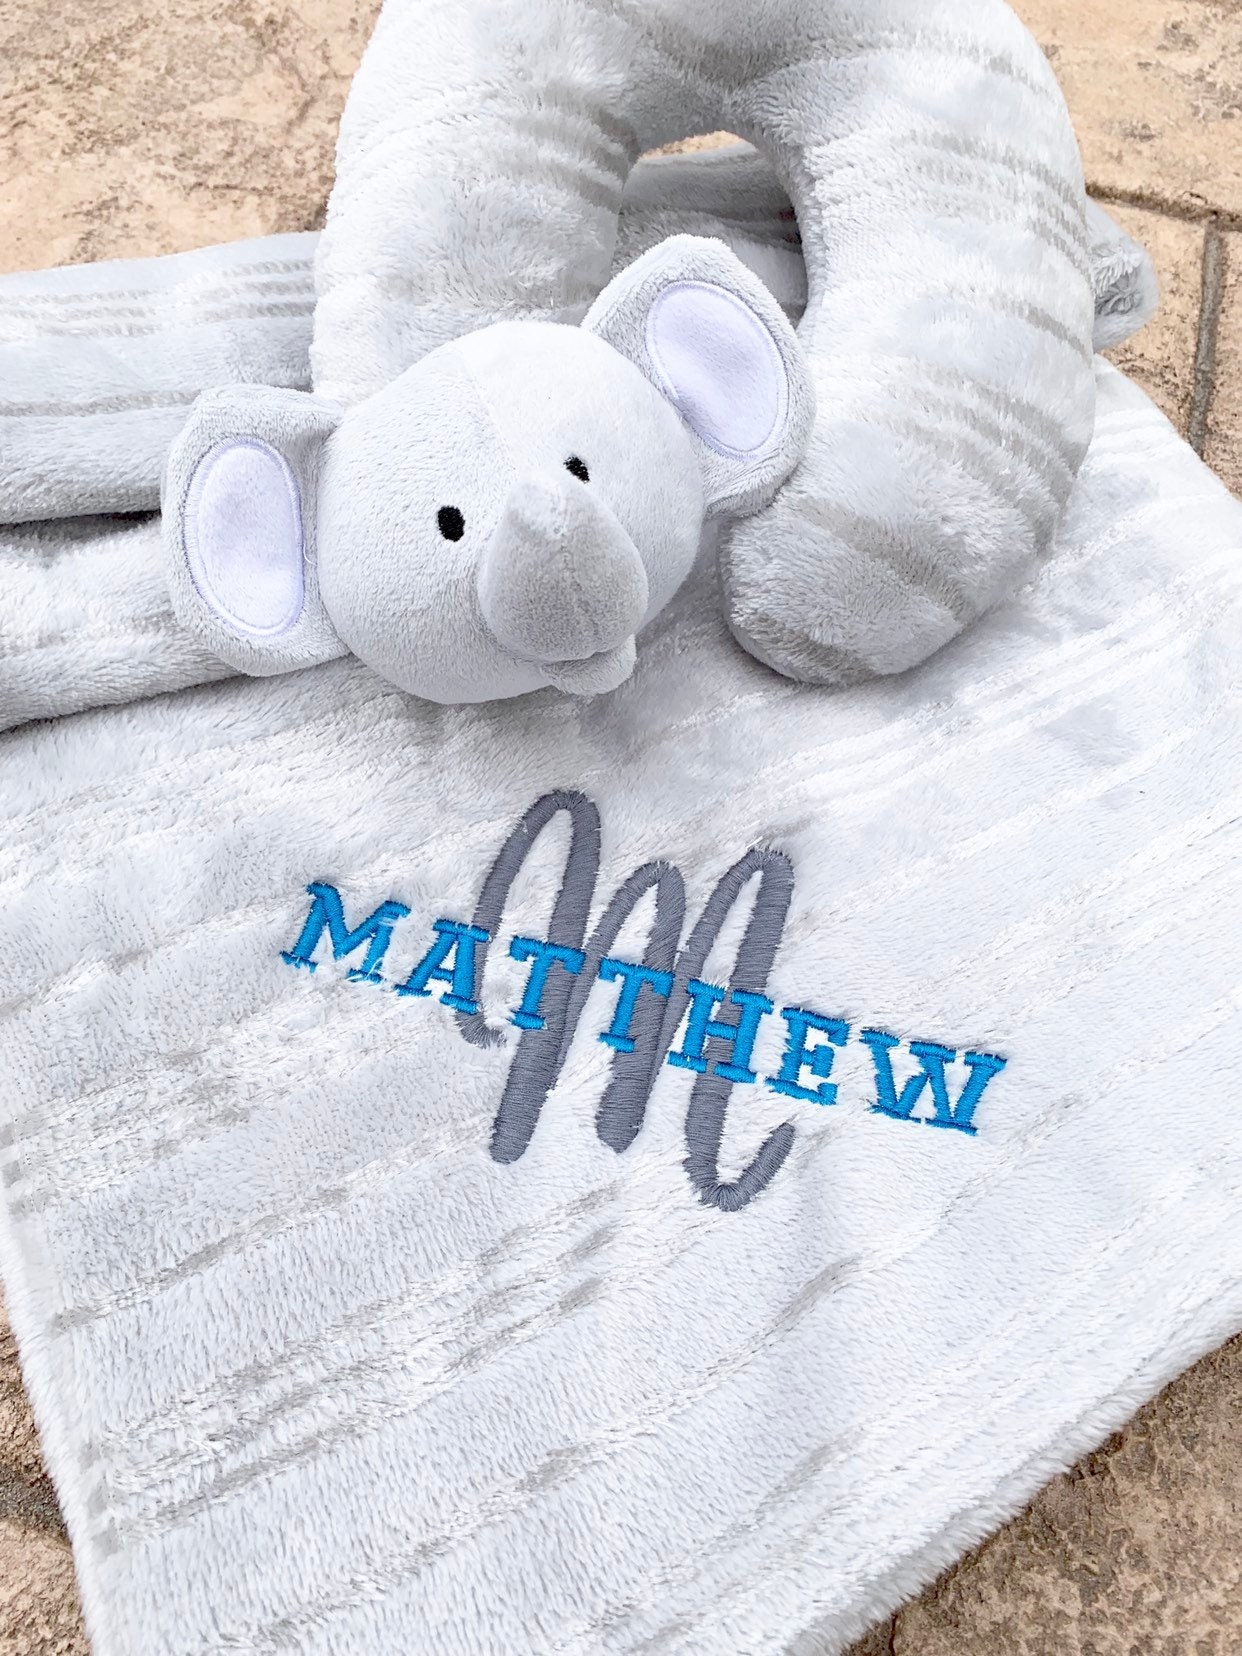 bbb428f50 Embroidered Baby Blanket and Newborn Head Pillow - Personalized ...